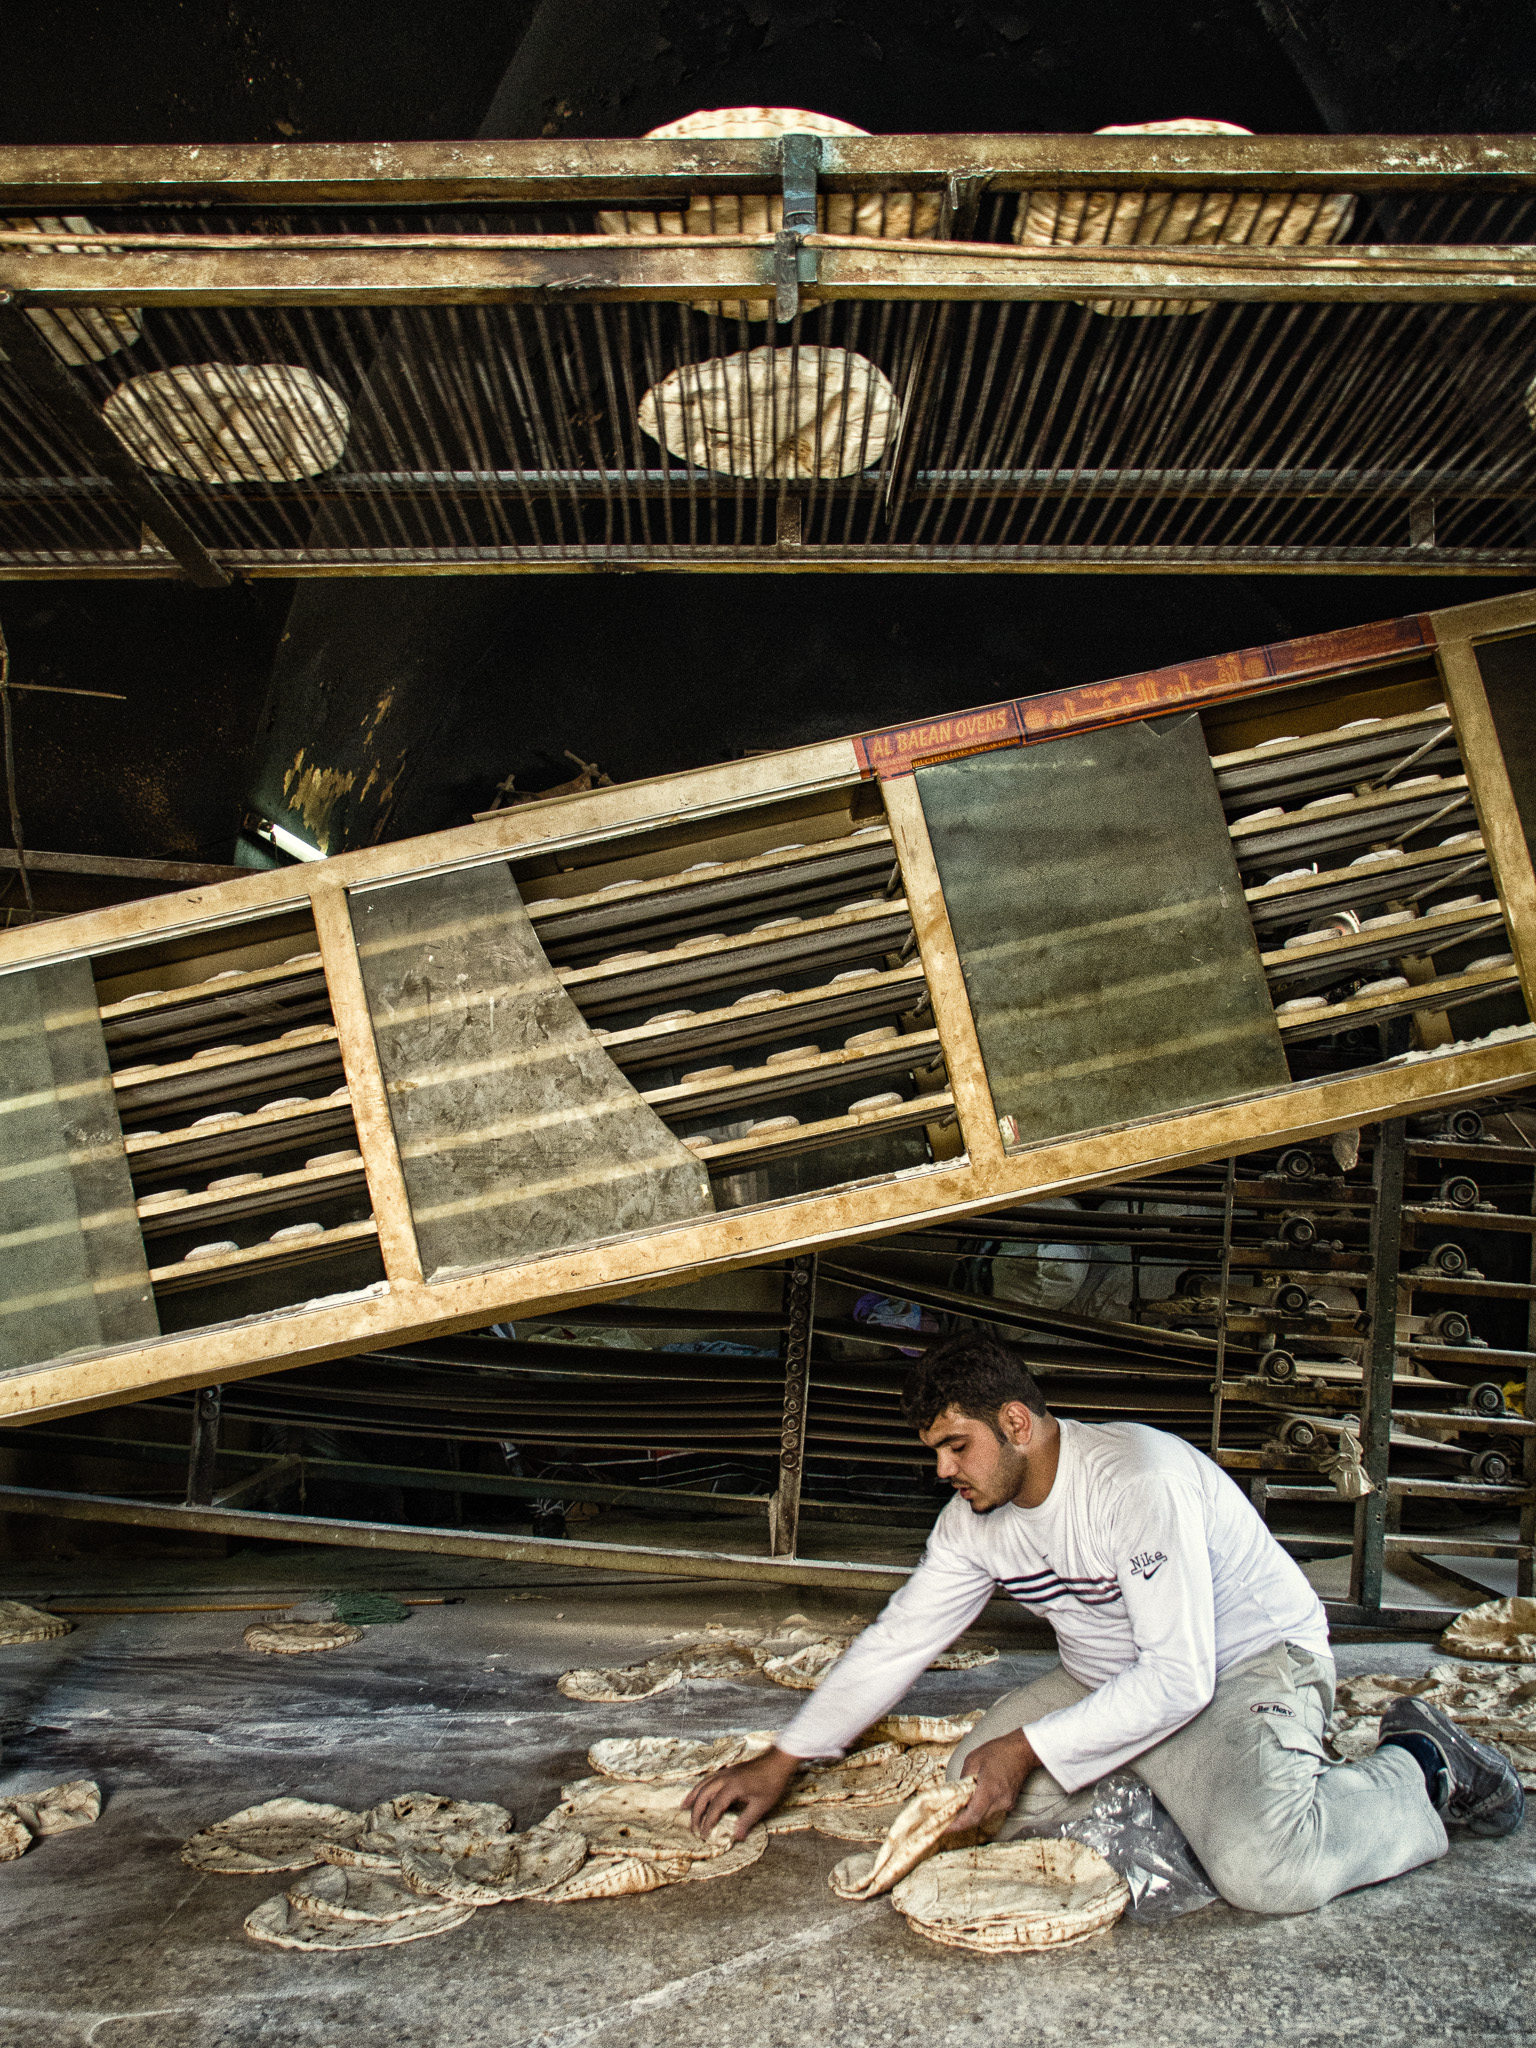 An old industrialized bakery has conveyor belts crisscrossing a rather large space, before dumping the breads onto the floor for sorting and packing by hand (Aleppo).